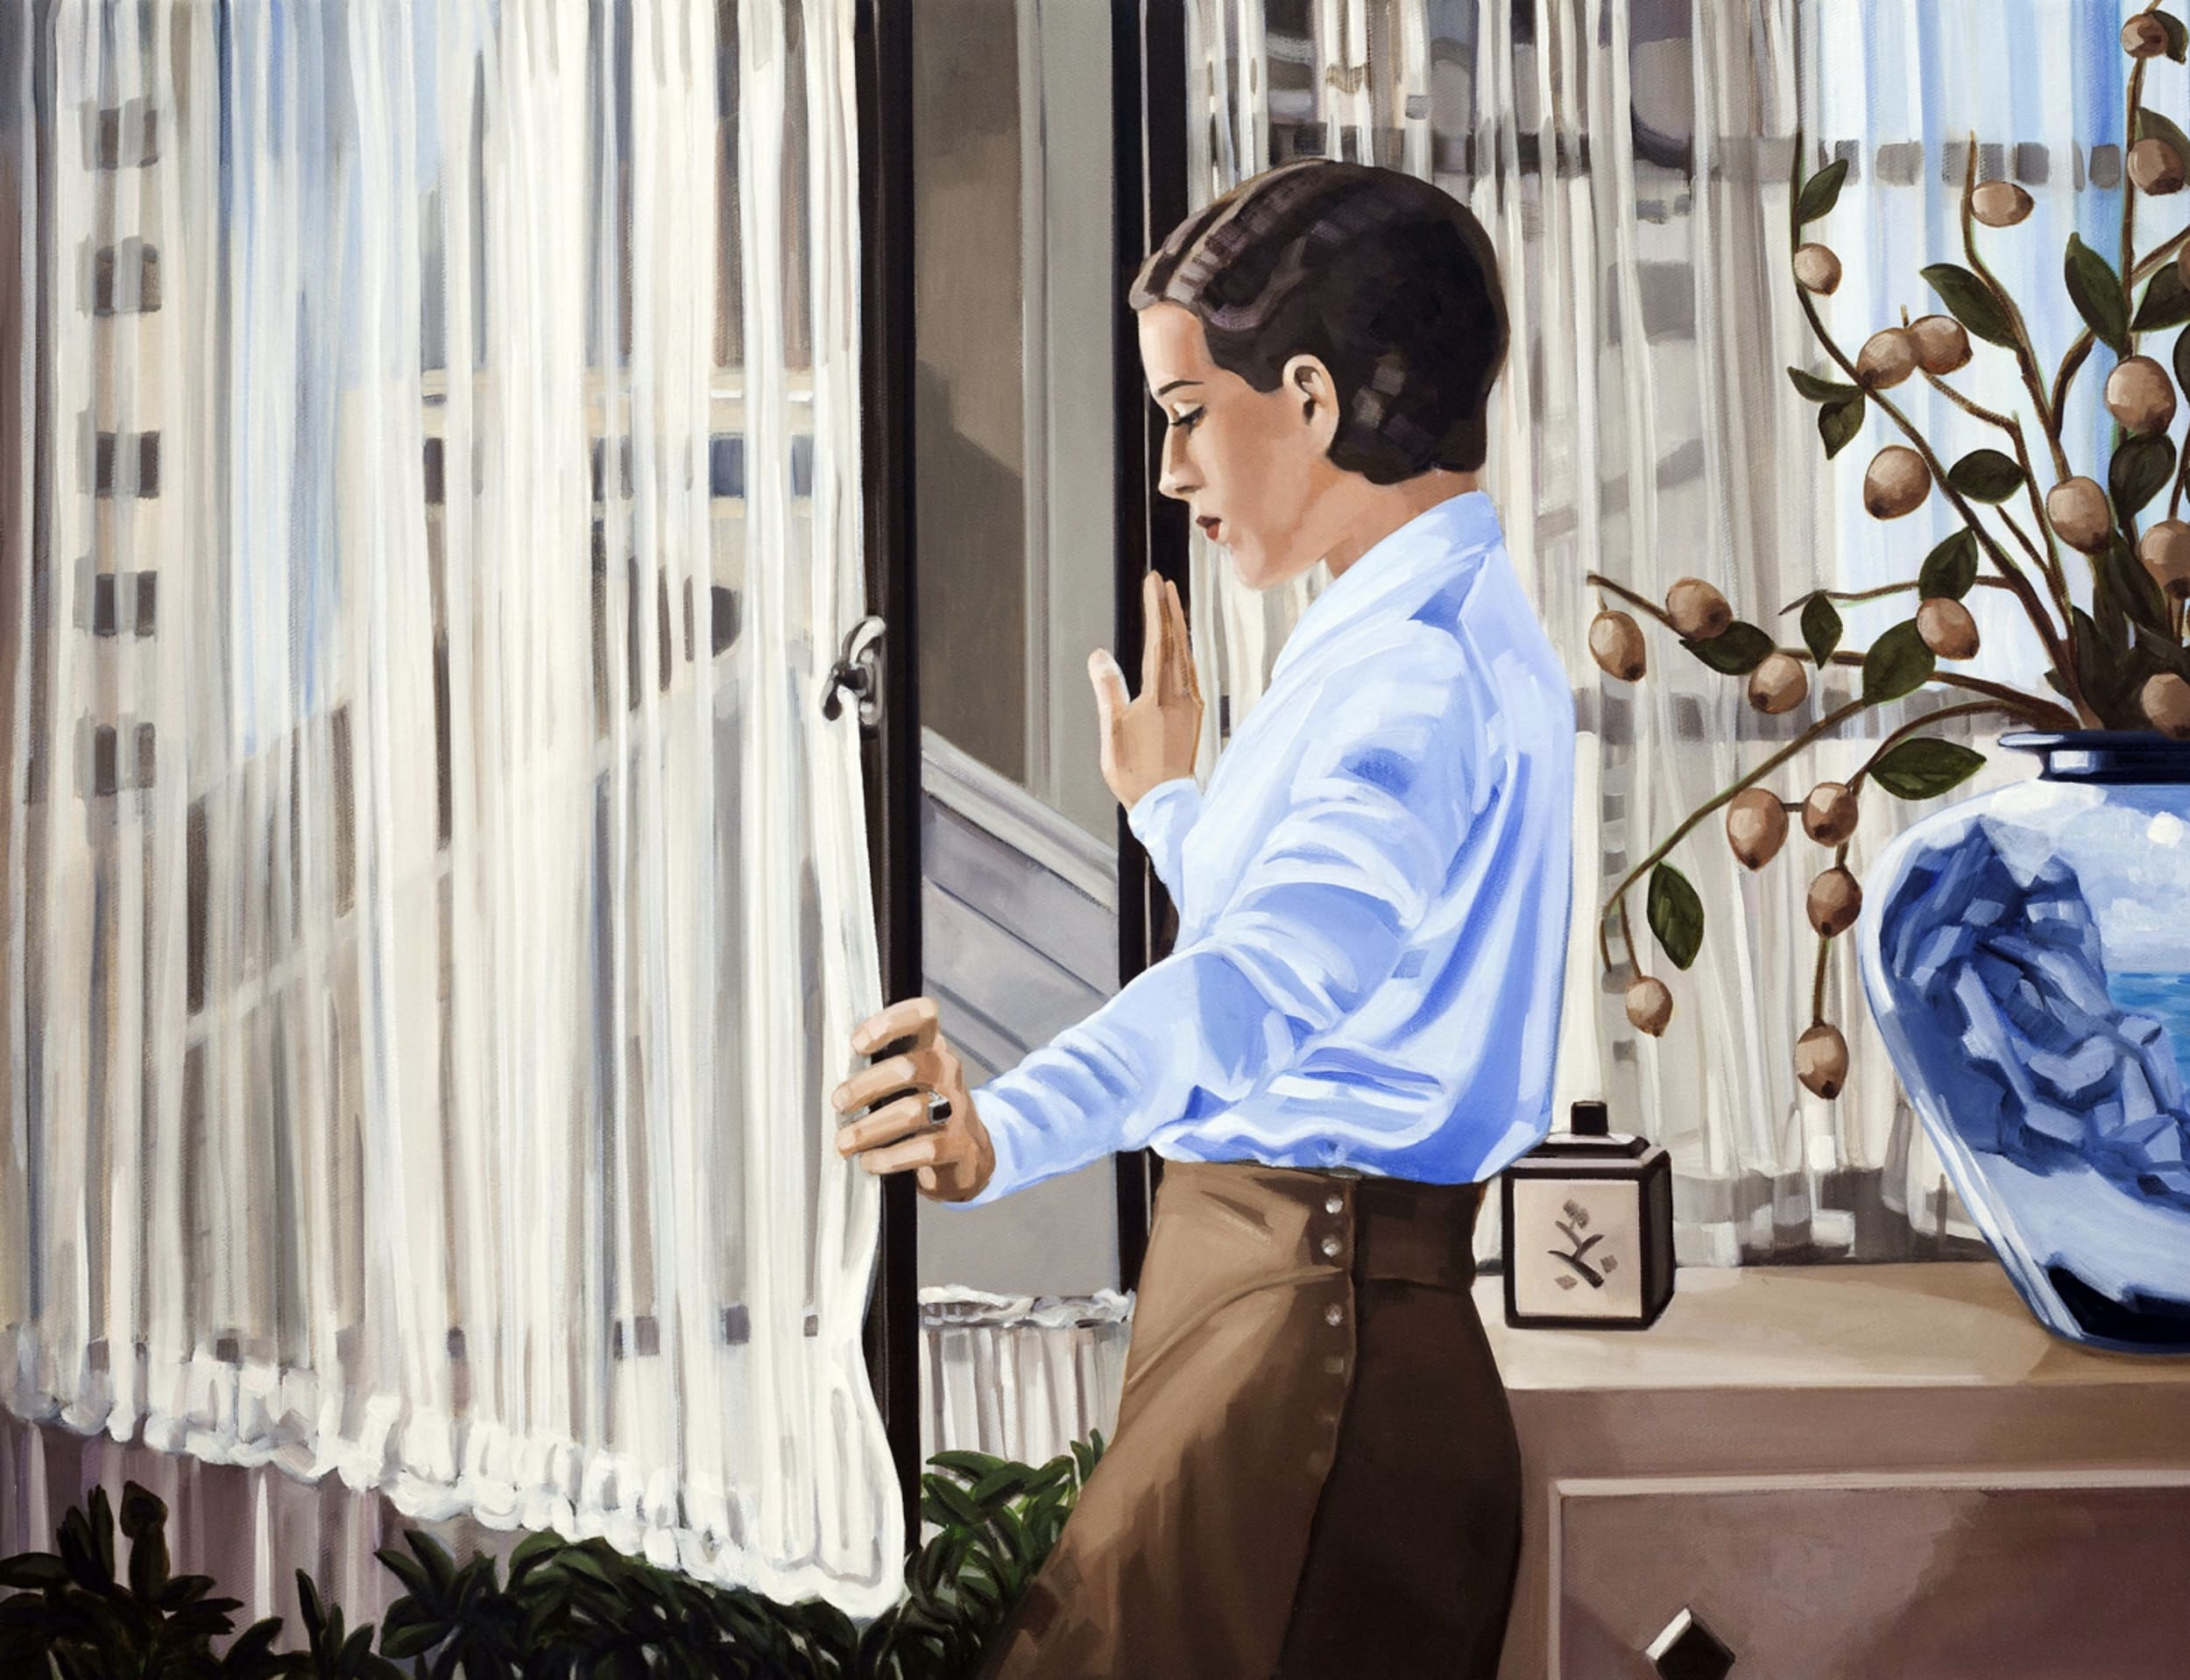 woman looking out window art